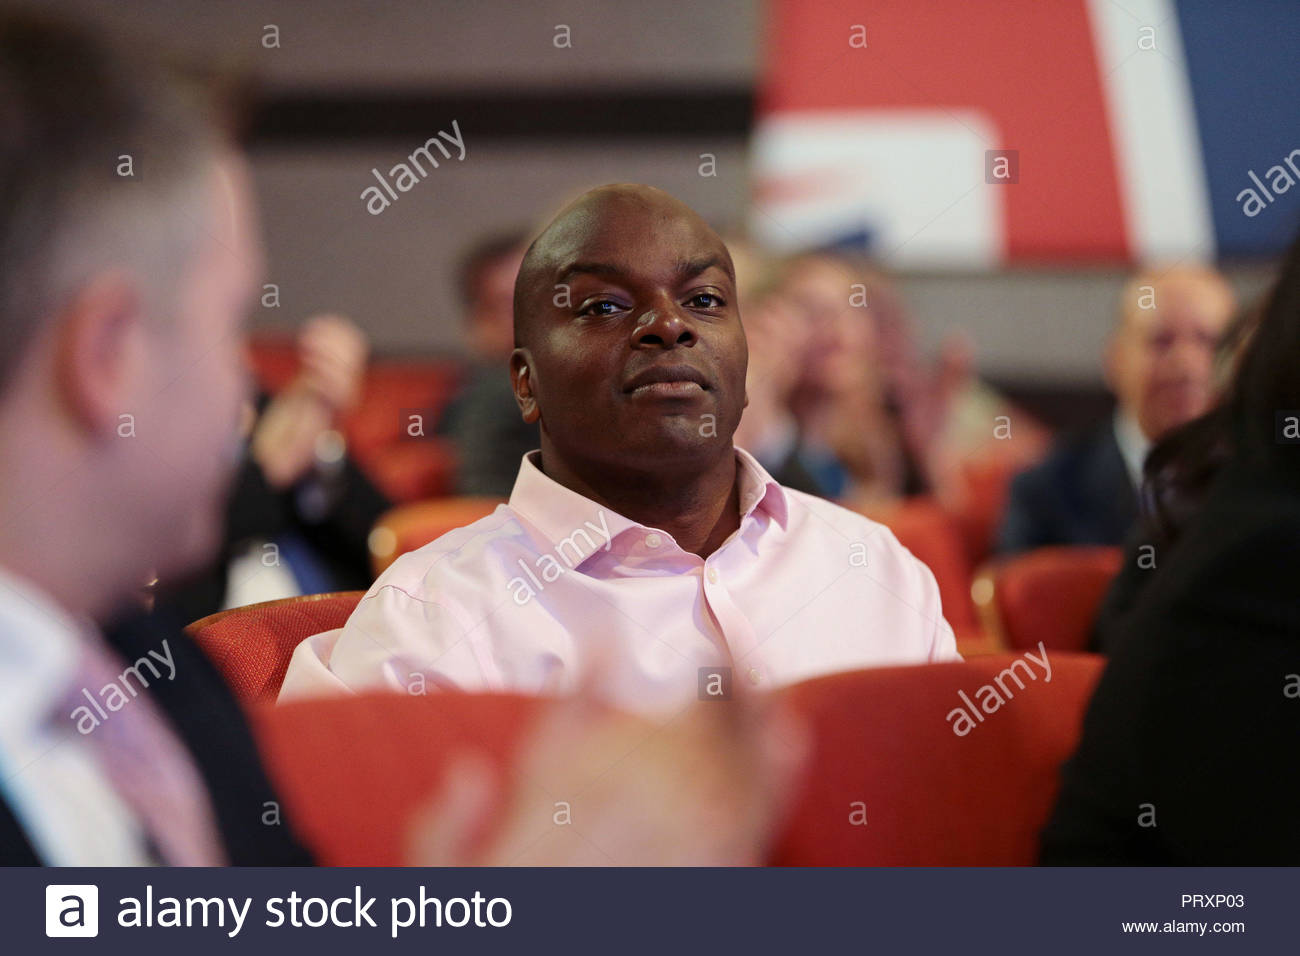 File photo dated 02/10/18 of Shaun Bailey, who will remain as the Tory London mayoral candidate after his comments on Muslims and Hindus that provoked controversy. - Stock Image